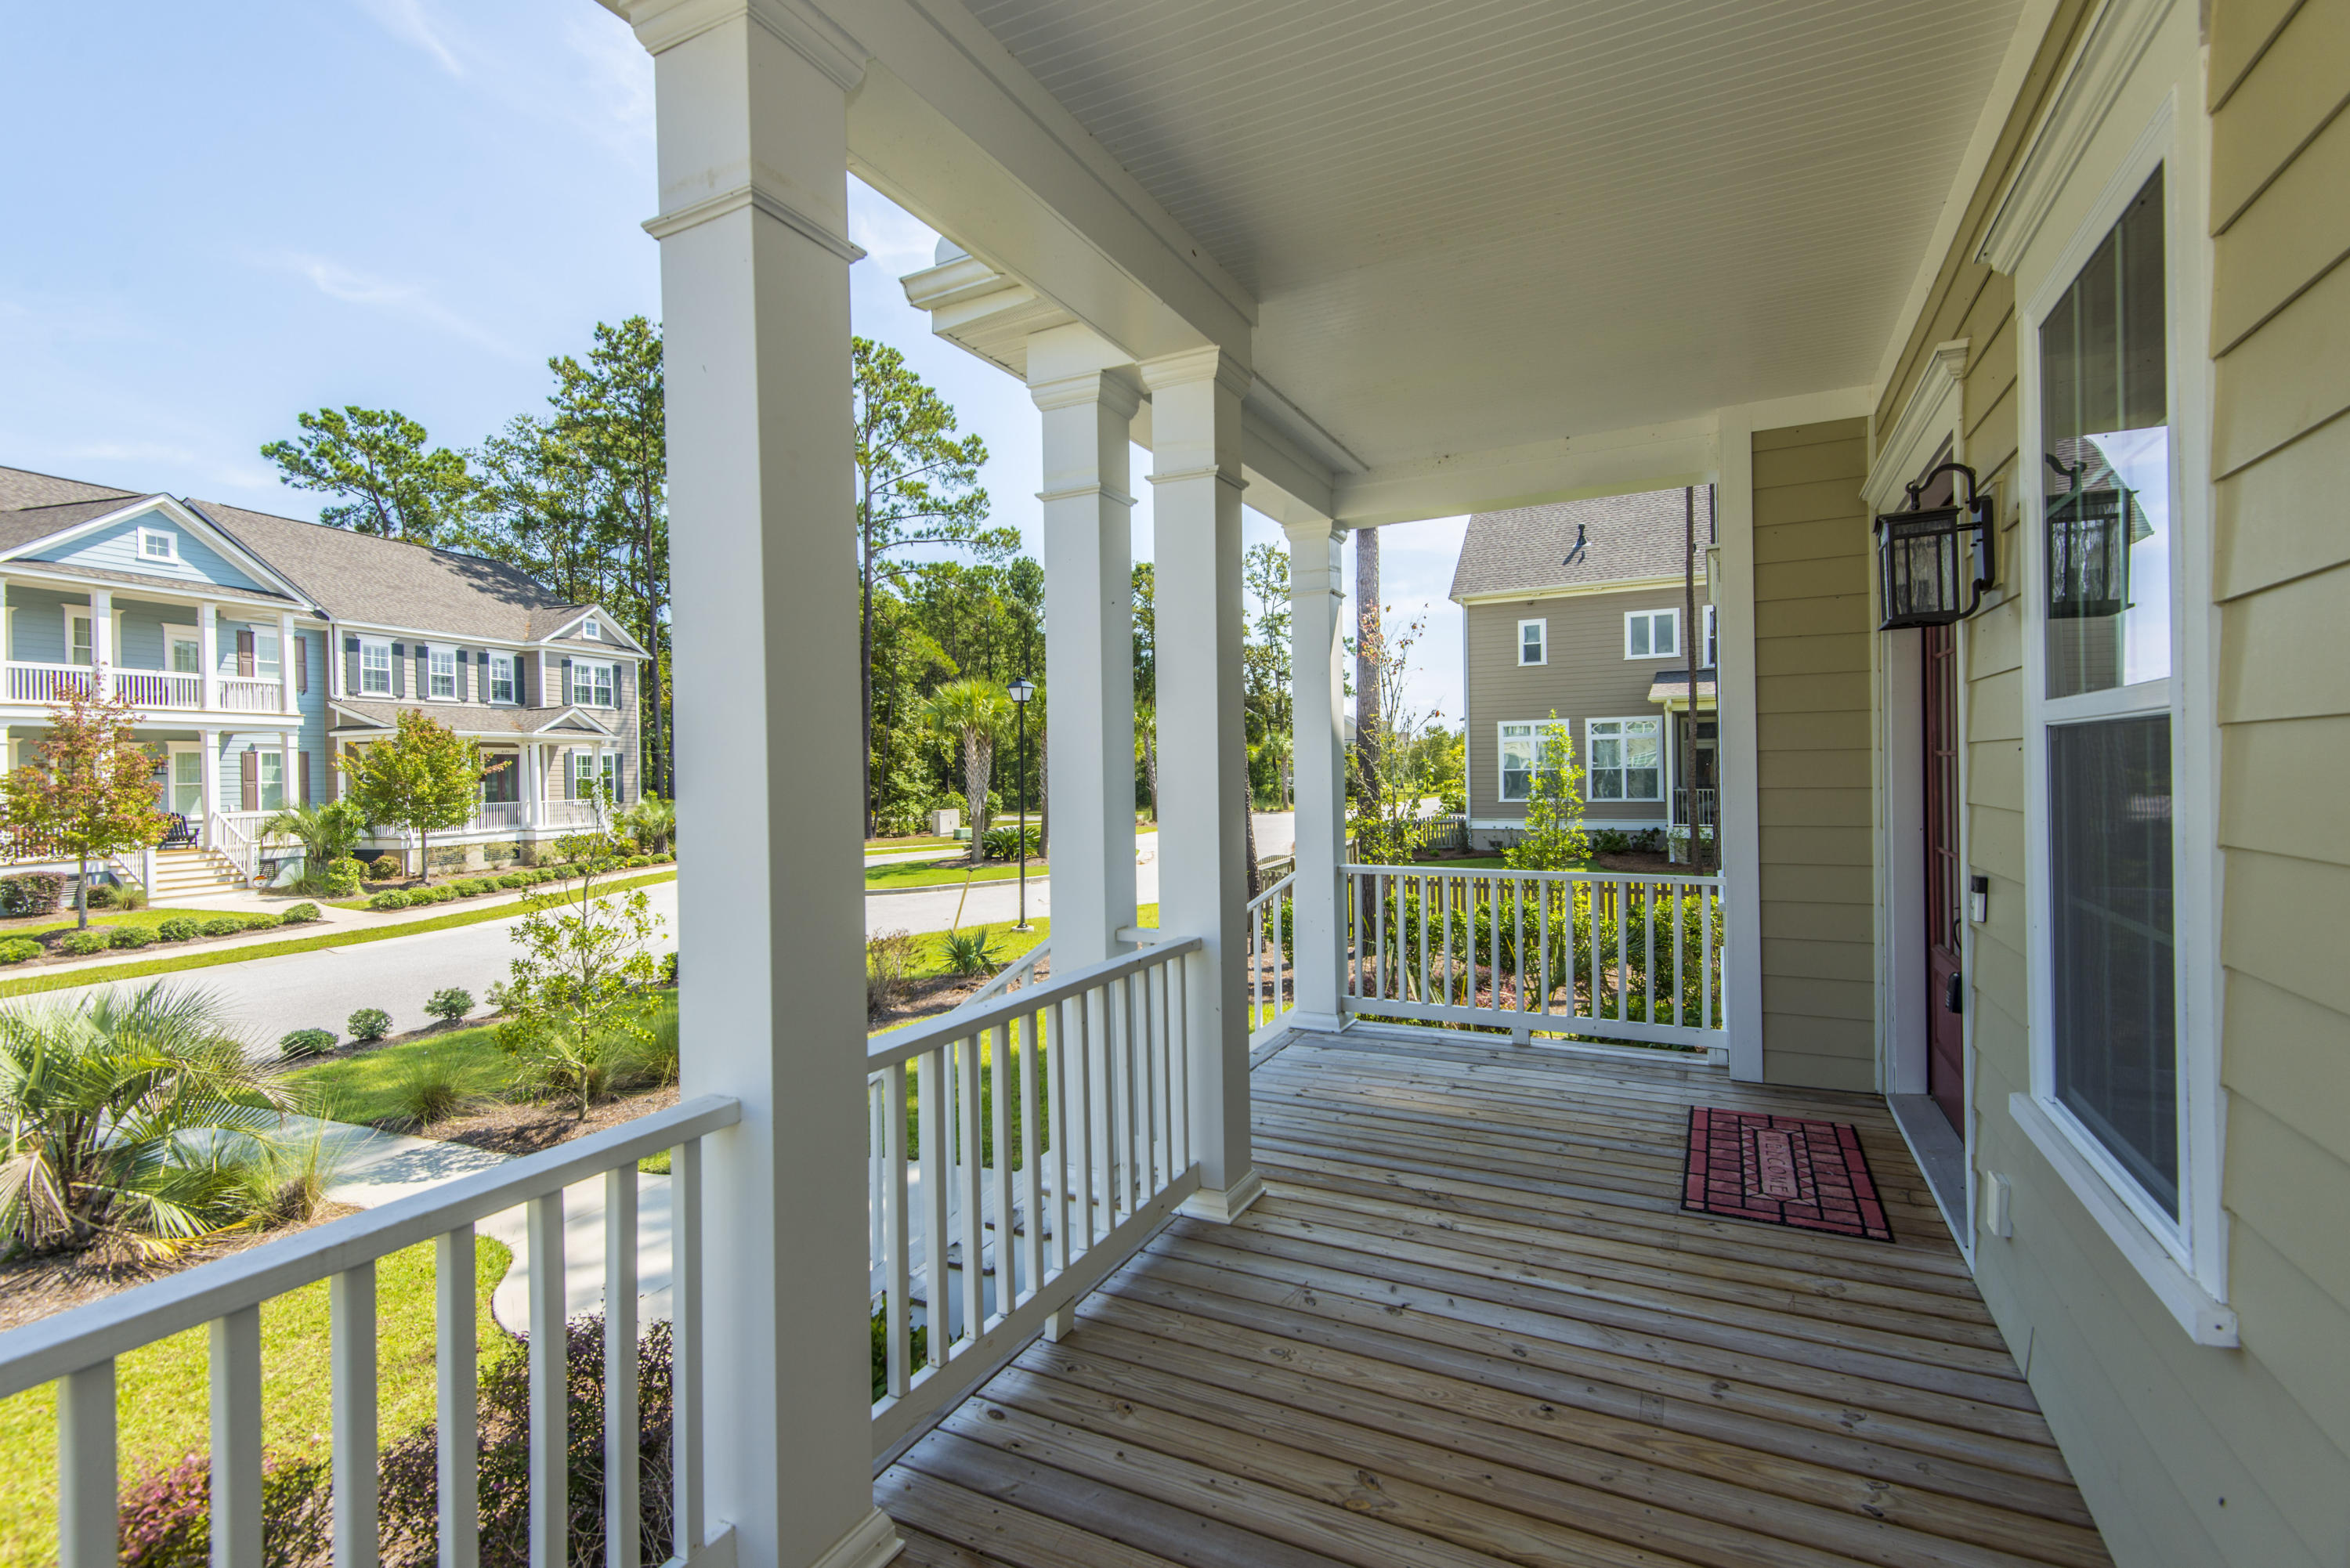 Dunes West Homes For Sale - 3172 Sturbridge, Mount Pleasant, SC - 15